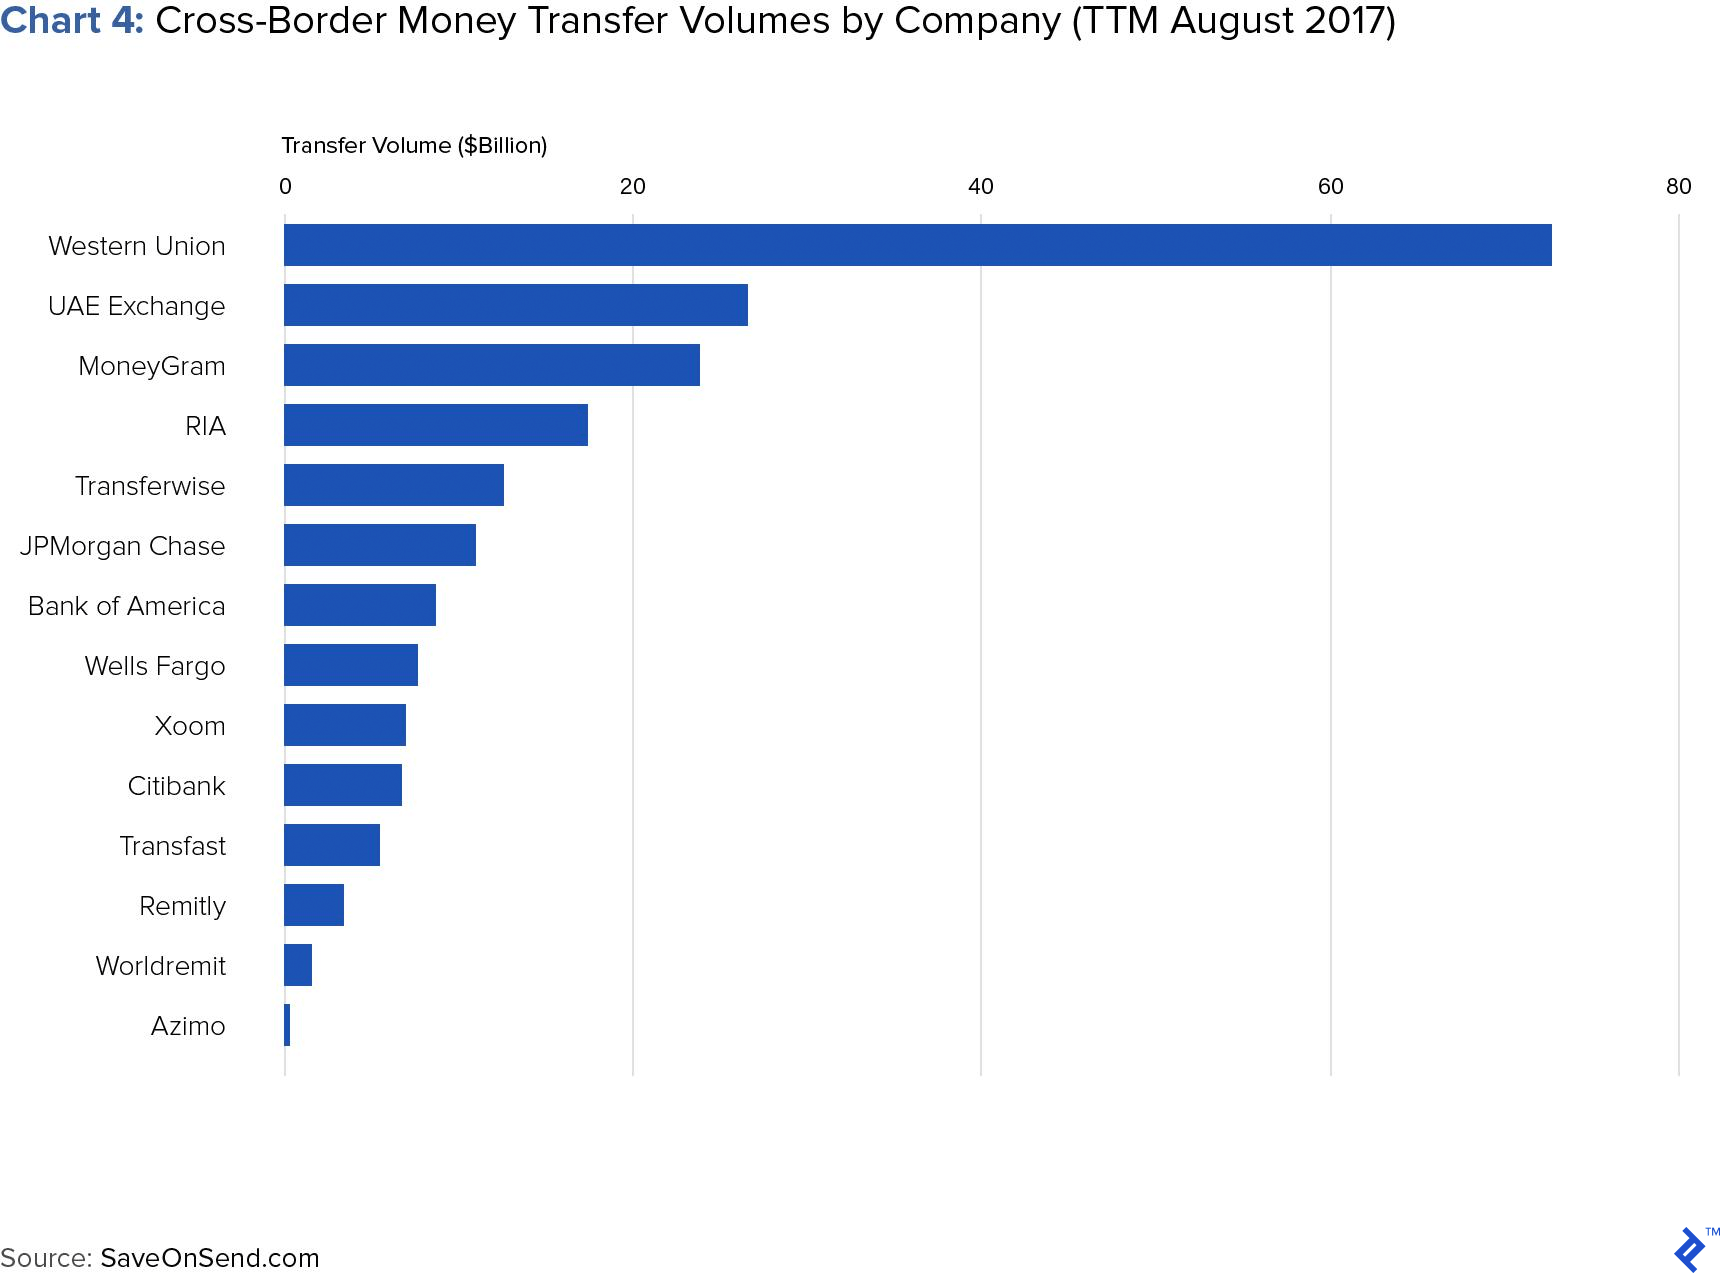 Chart 4: Cross-border Money Transfer Volumes by Company (TTM August 2017)